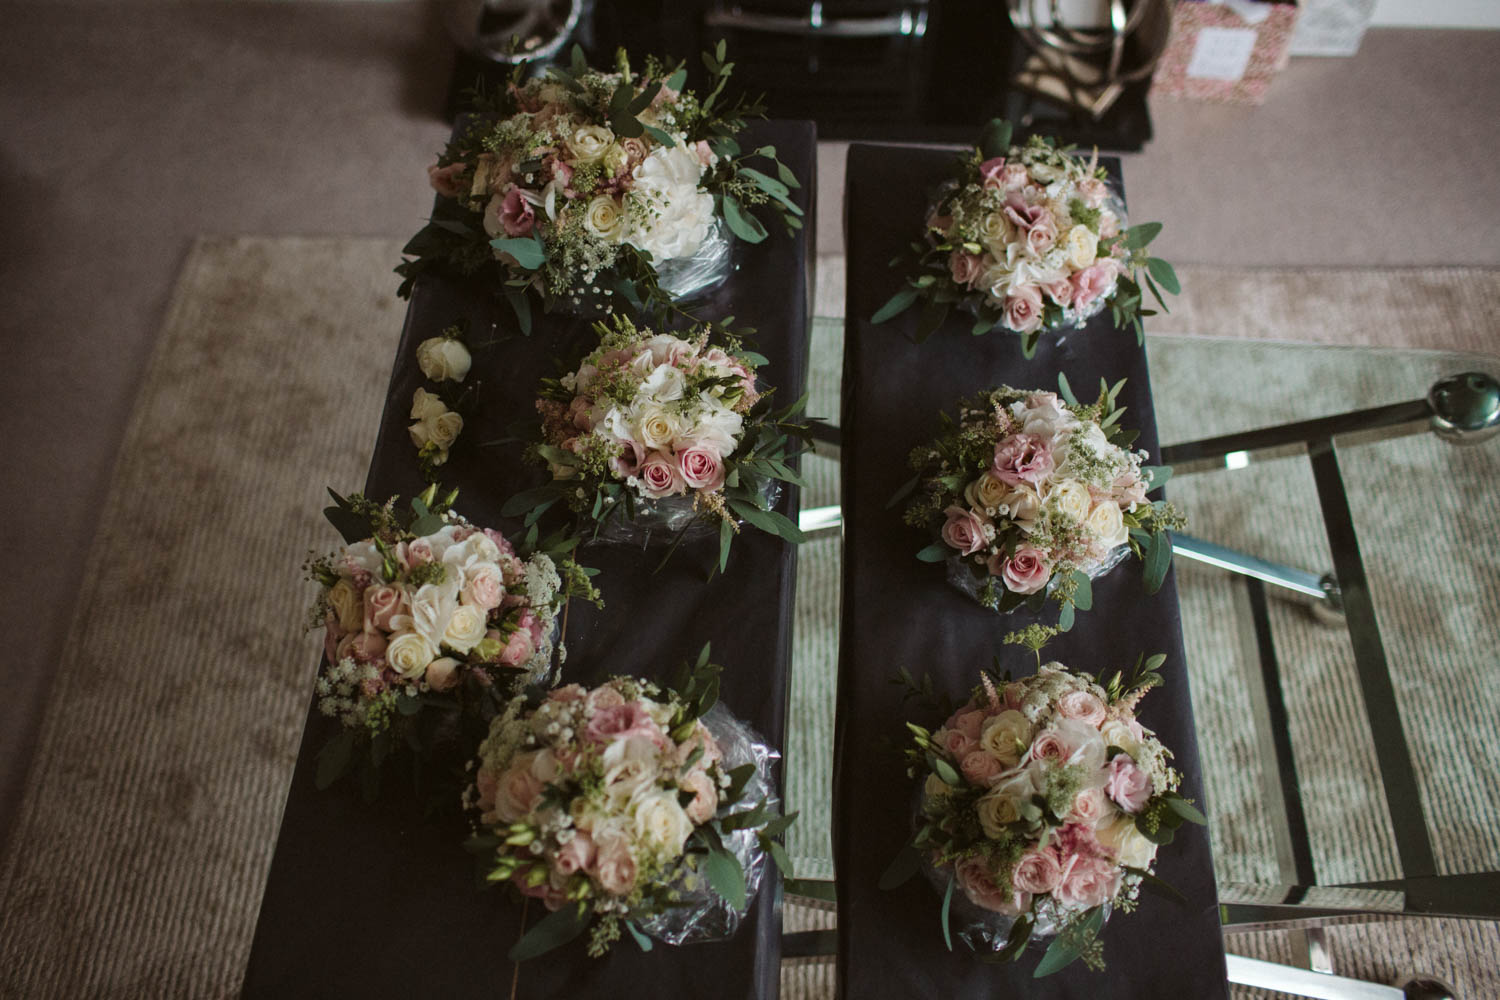 the wedding flowers photographed from above